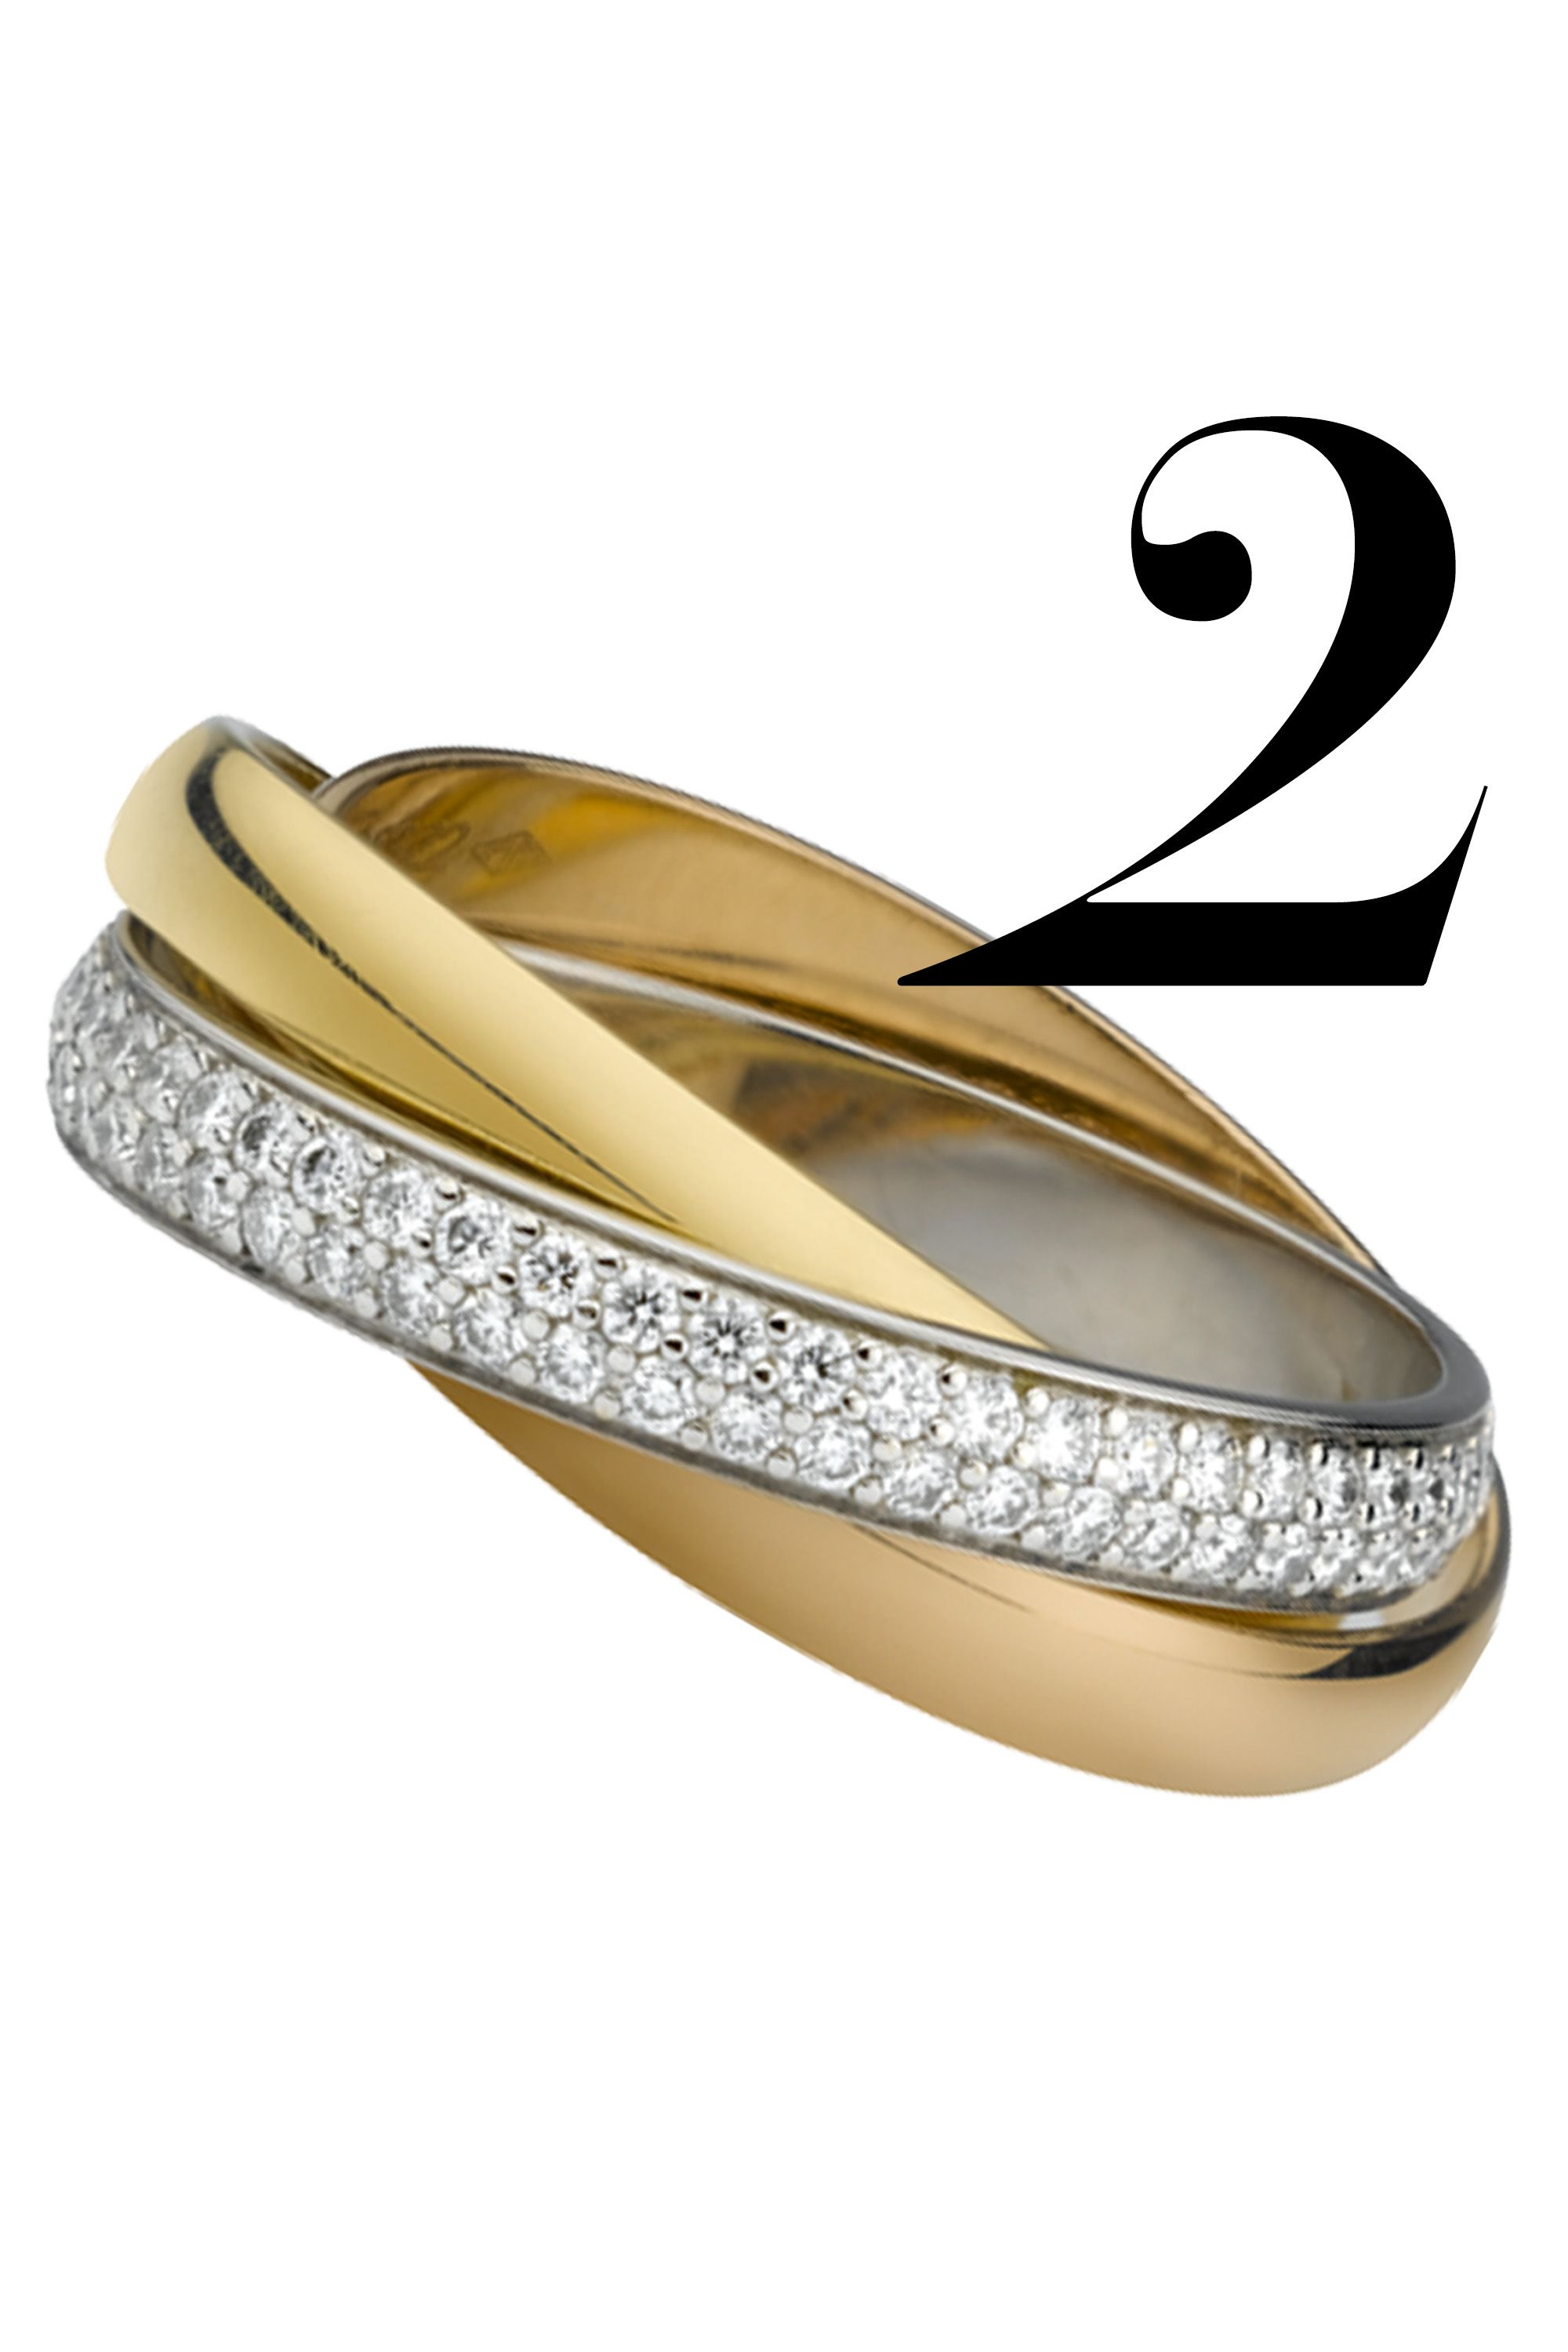 """Believe in the power of three—the pink band stands for love, yellow for fidelity and white for friendship—the perfect trifecta for a lifelong bond.<em></em><em>Cartier Trinity Ring, $6,800, <a href=""""http://bs.serving-sys.com/BurstingPipe/adServer.bs?cn=tf&amp&#x3B;c=20&amp&#x3B;mc=click&amp&#x3B;pli=12419142&amp&#x3B;PluID=0&amp&#x3B;ord=%n"""" target=""""_blank"""">cartier.us</a></em>"""